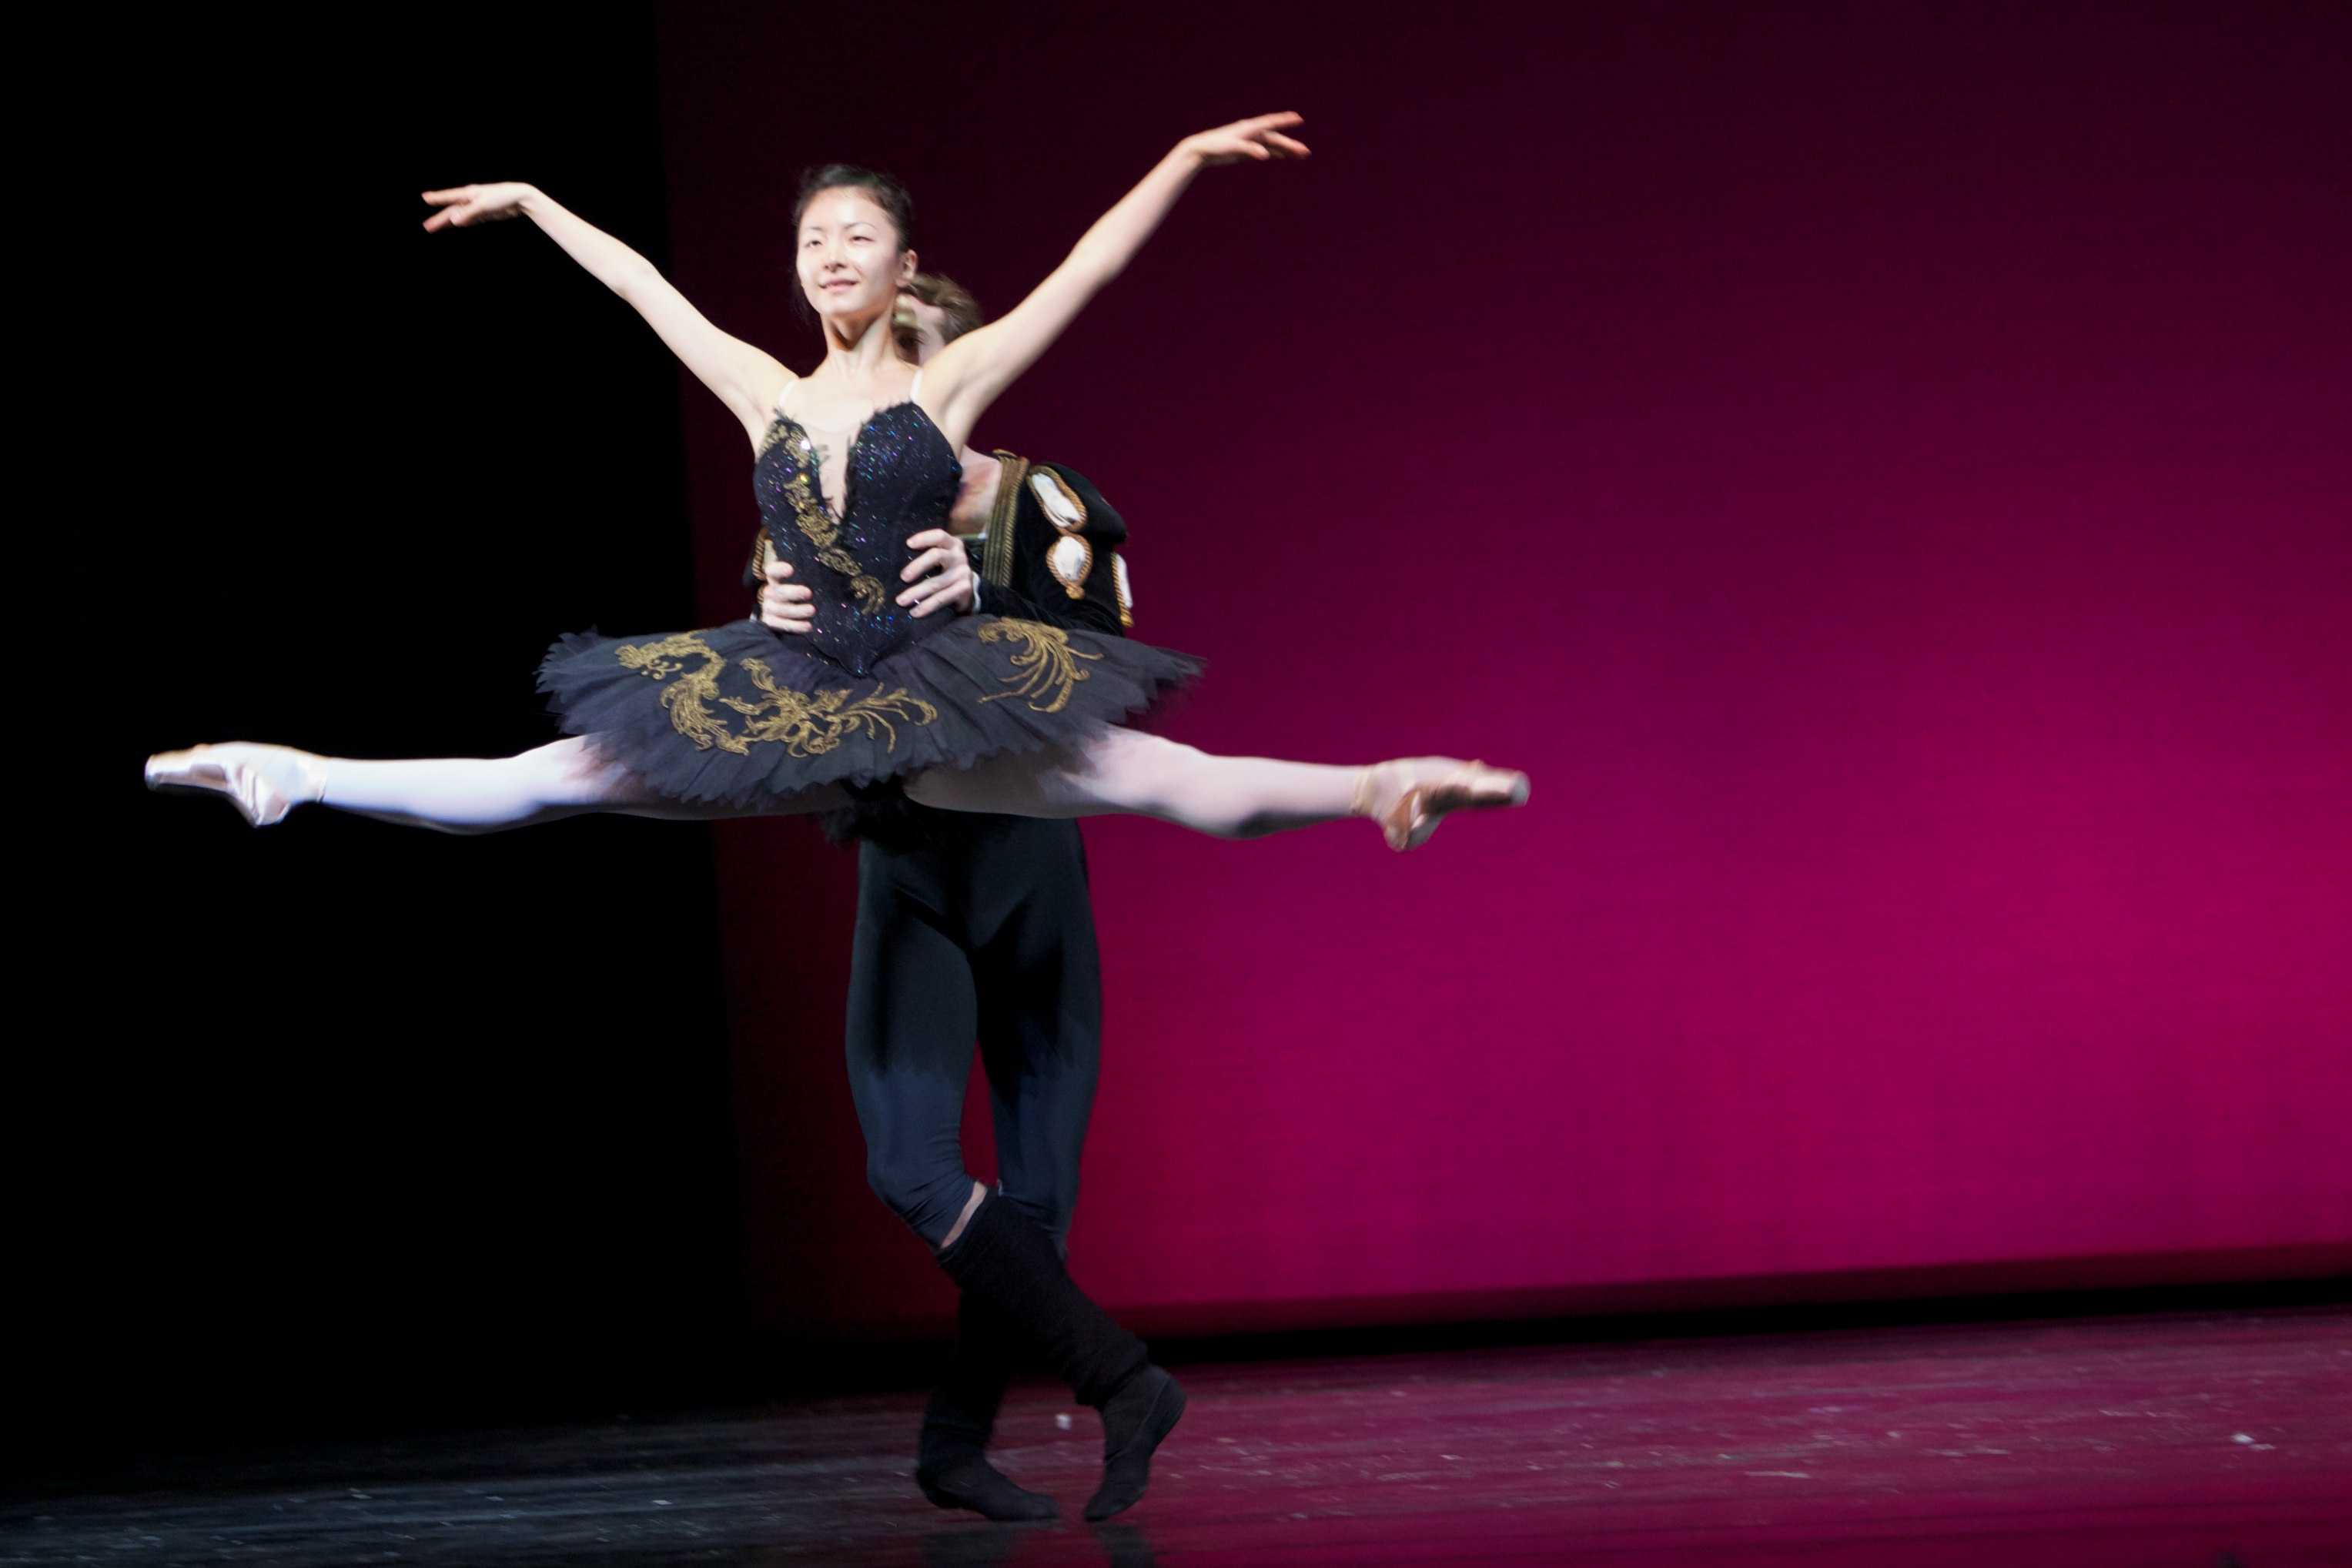 dancer in jete in Black tutu